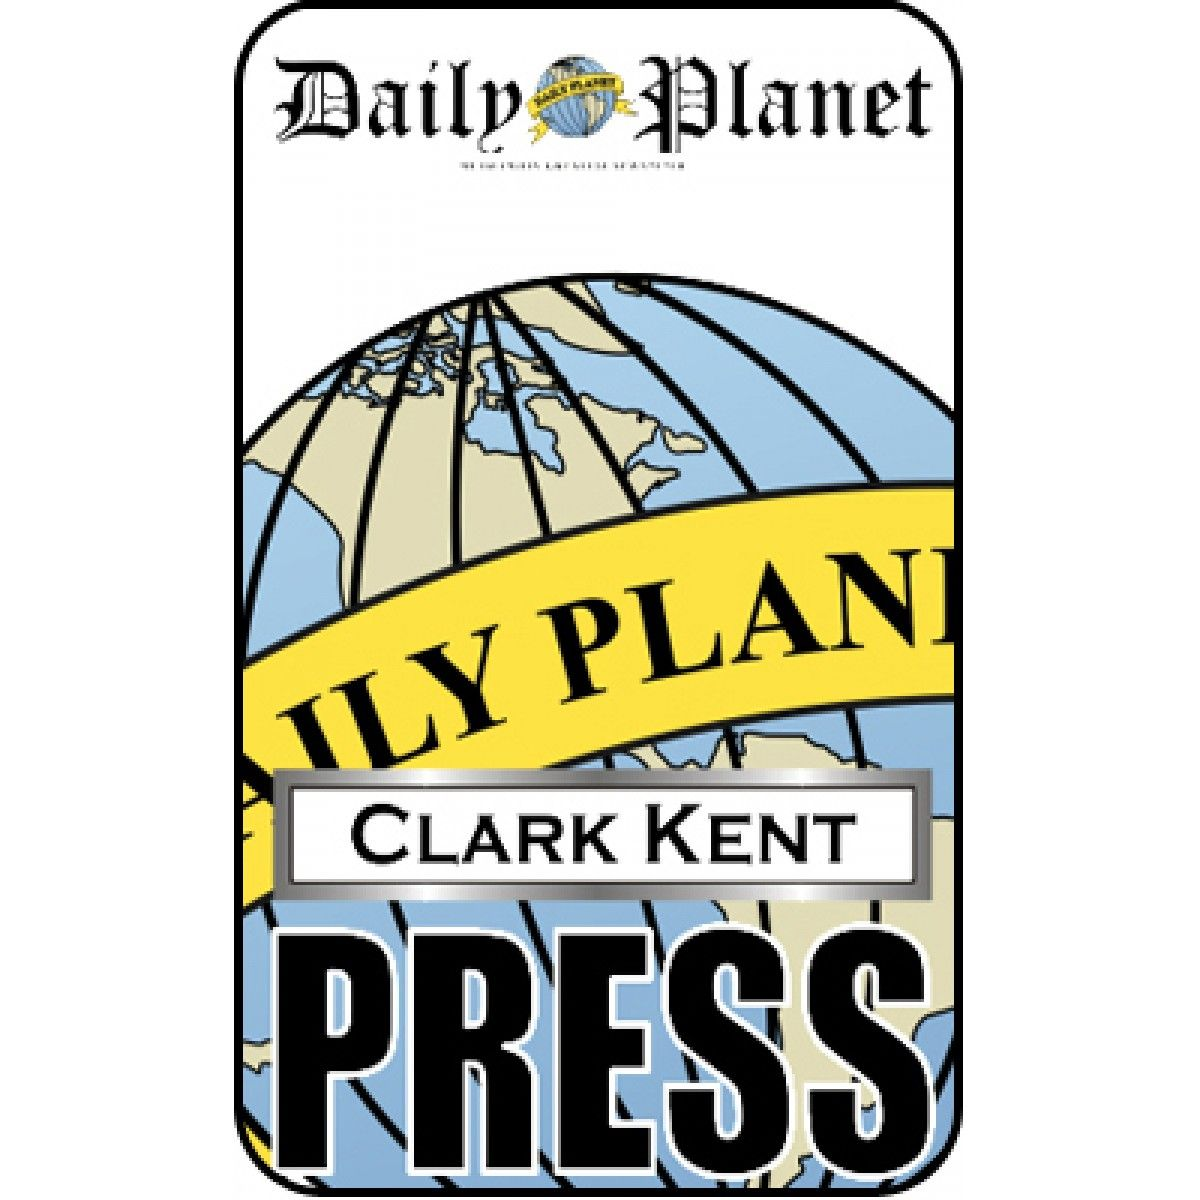 Clark kent press pass daily planet halloween pinterest for Media press pass template